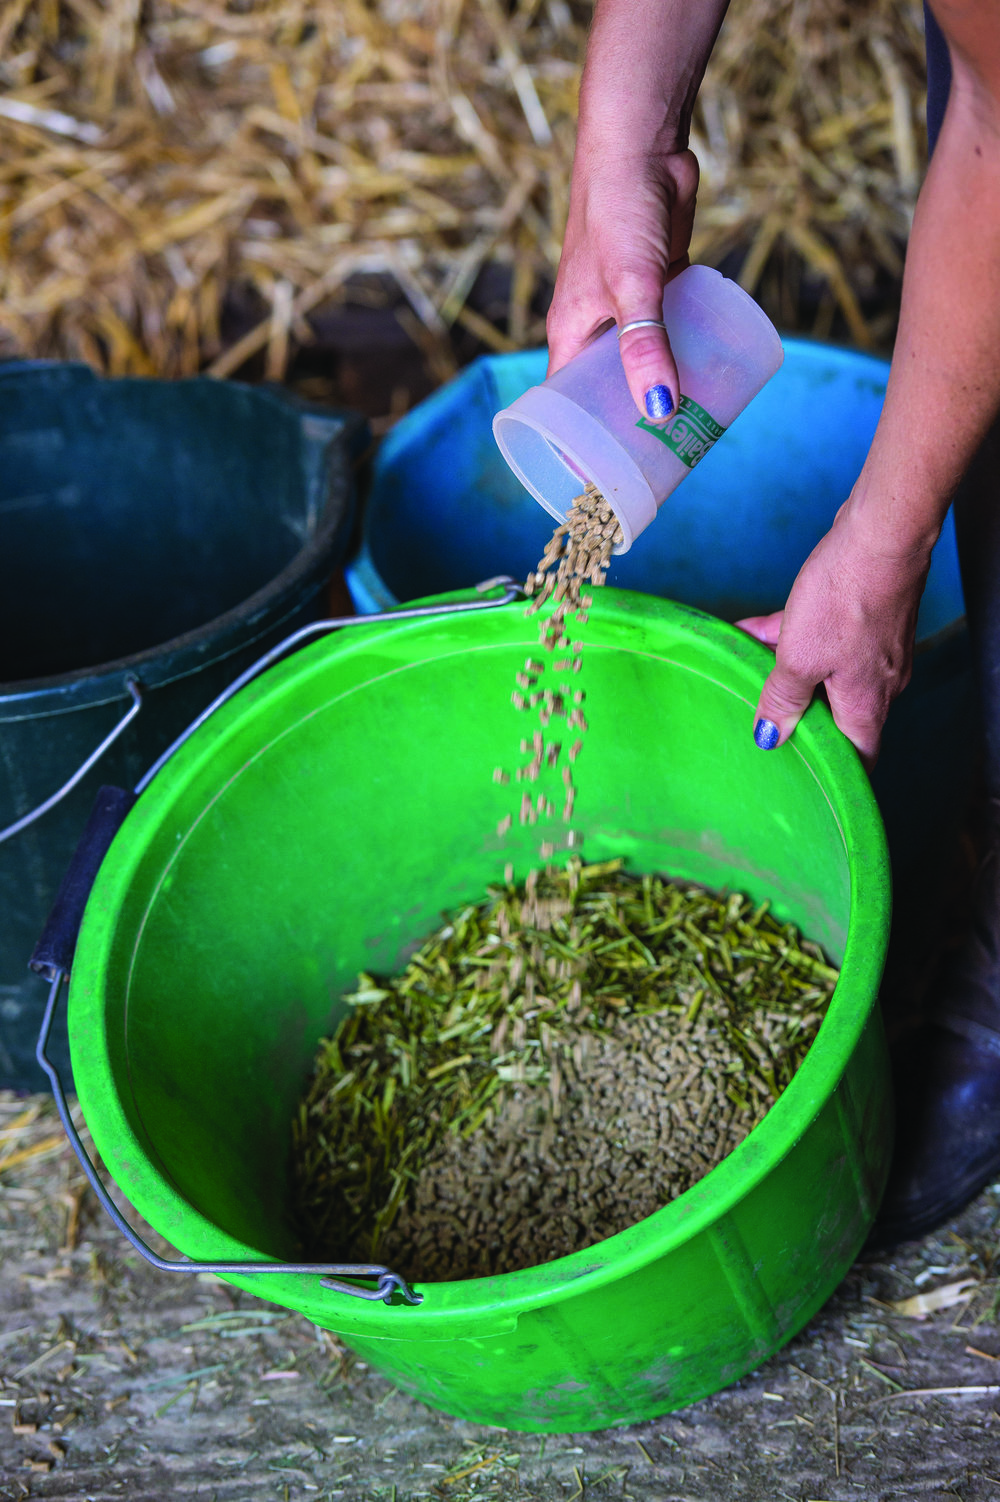 A low calorie balancer will provide nutrients likely to be lacking in forage, without the calories of a mix or cube